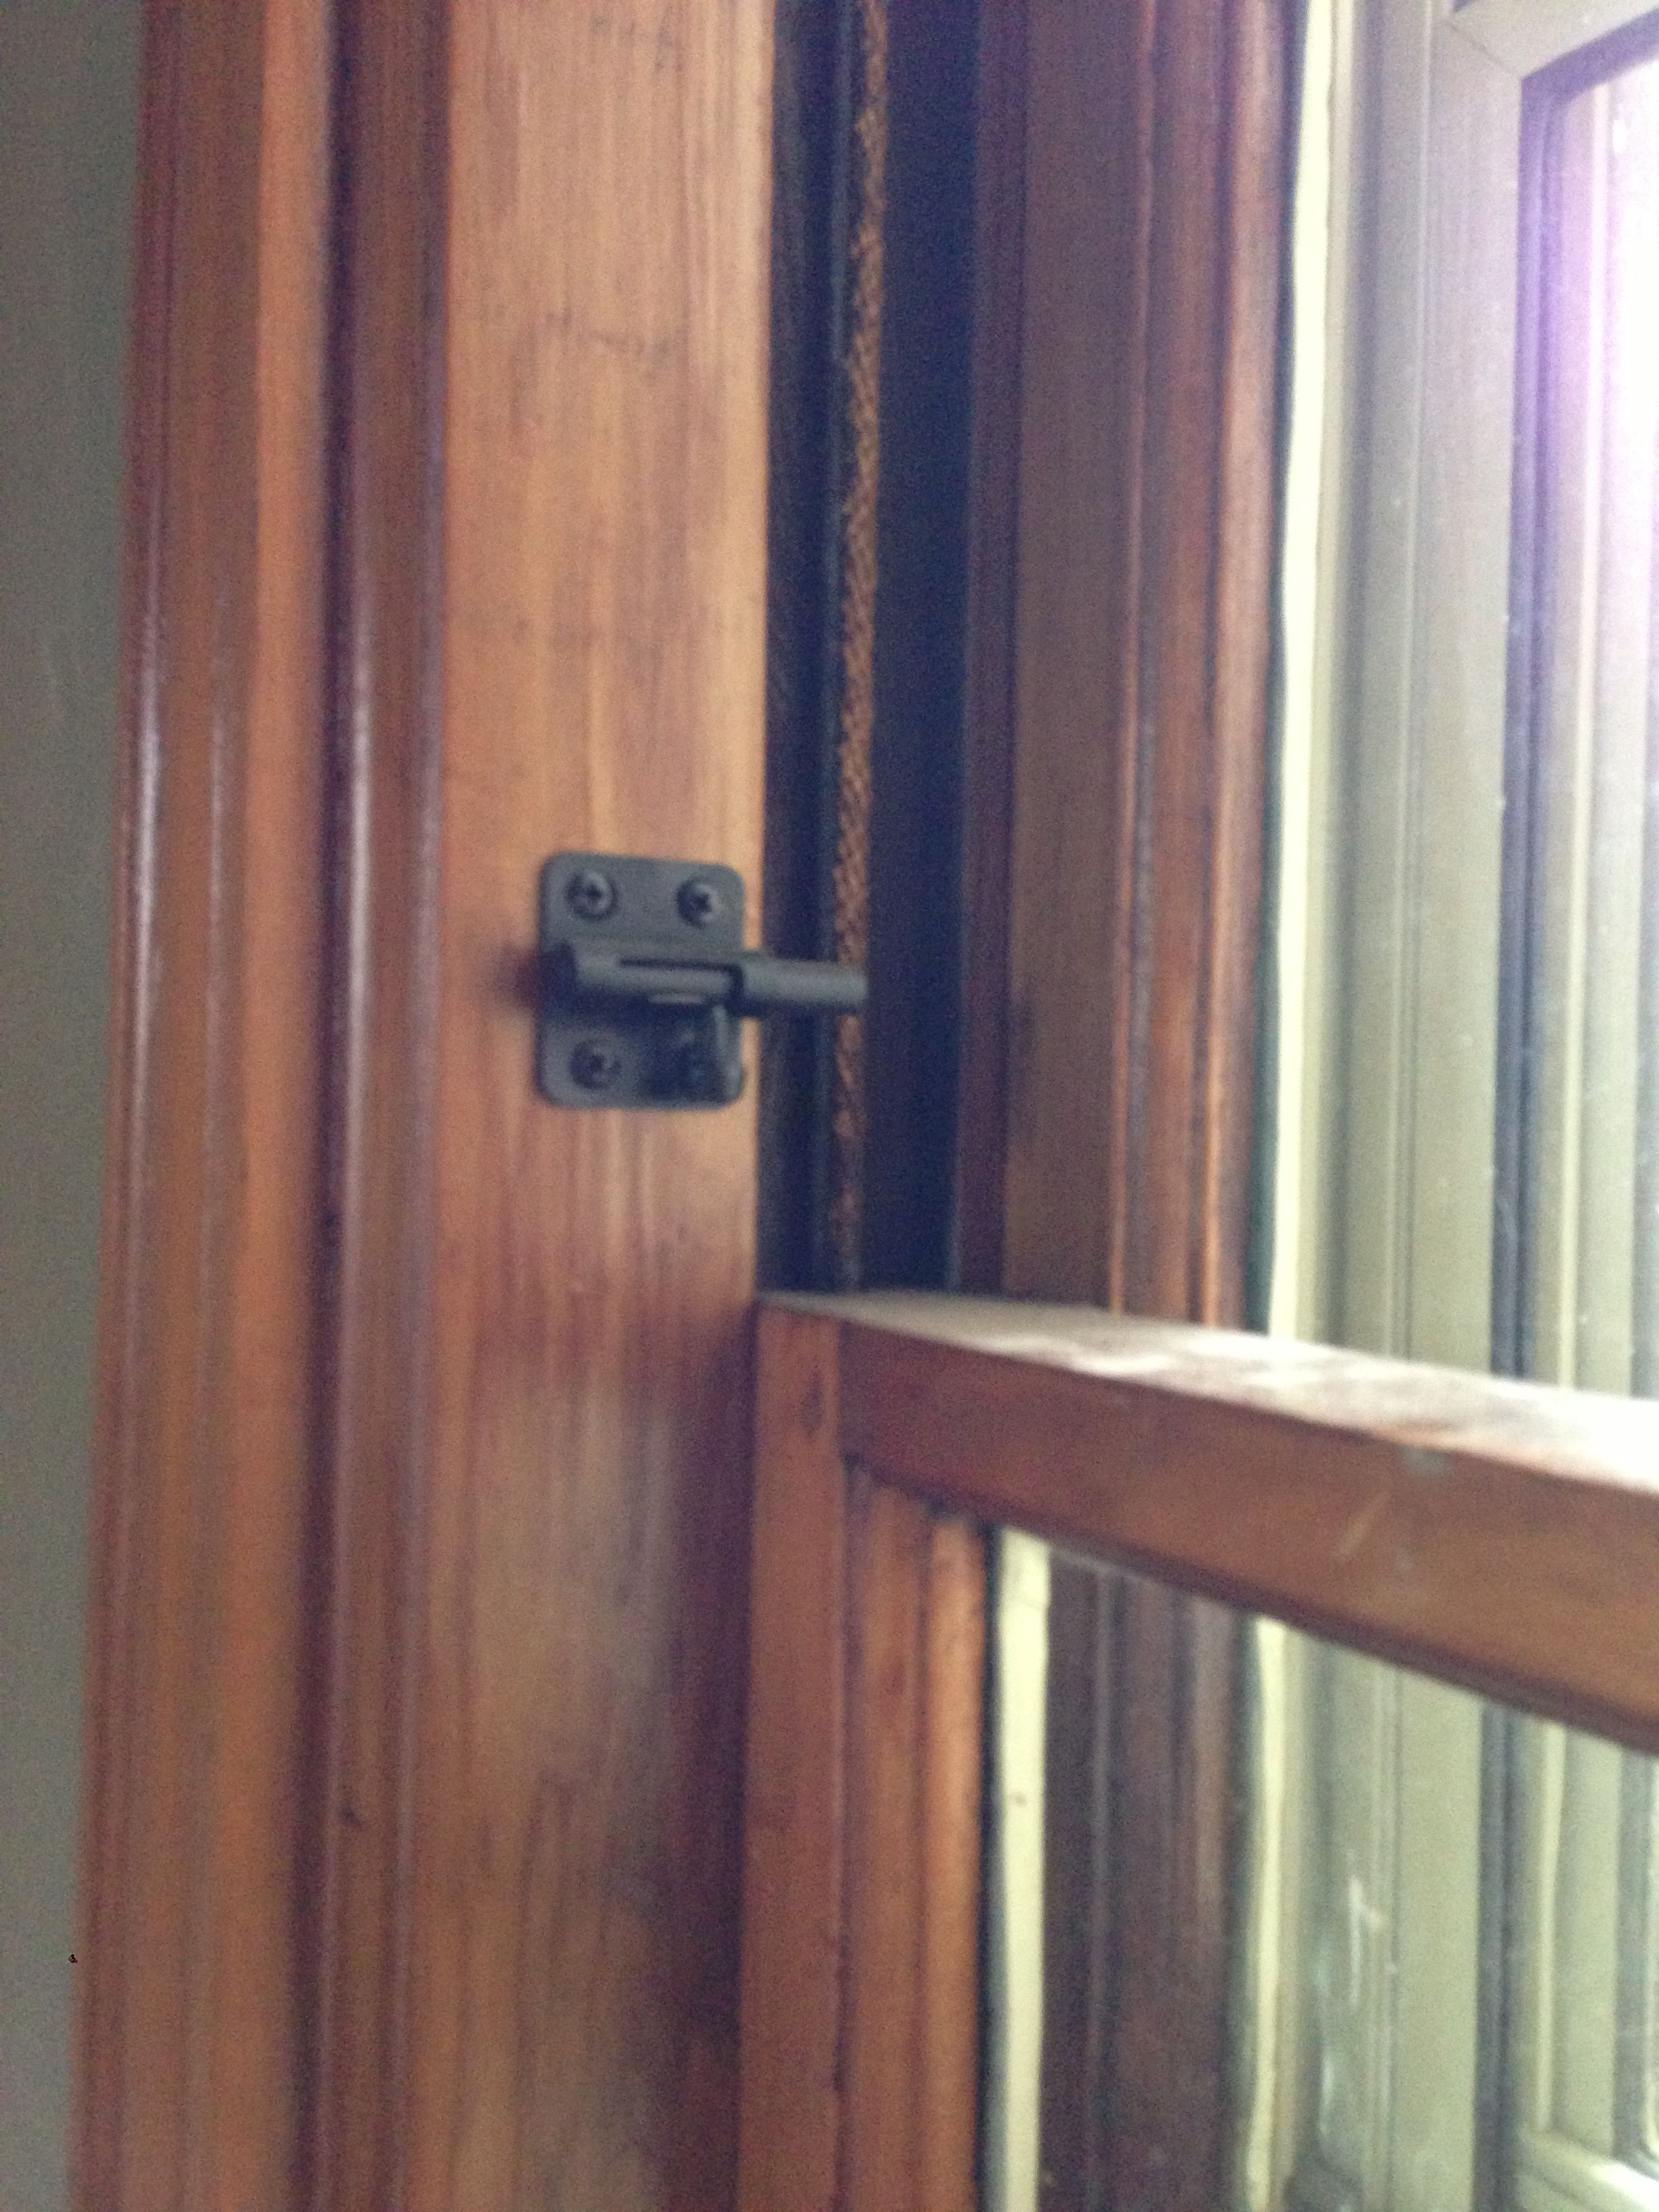 On our first floor we installed 2 inch door latches on the window frame for security. Works as a window stop and no one can lift our windows higher than the ... & On our first floor we installed 2 inch door latches on the window ... pezcame.com